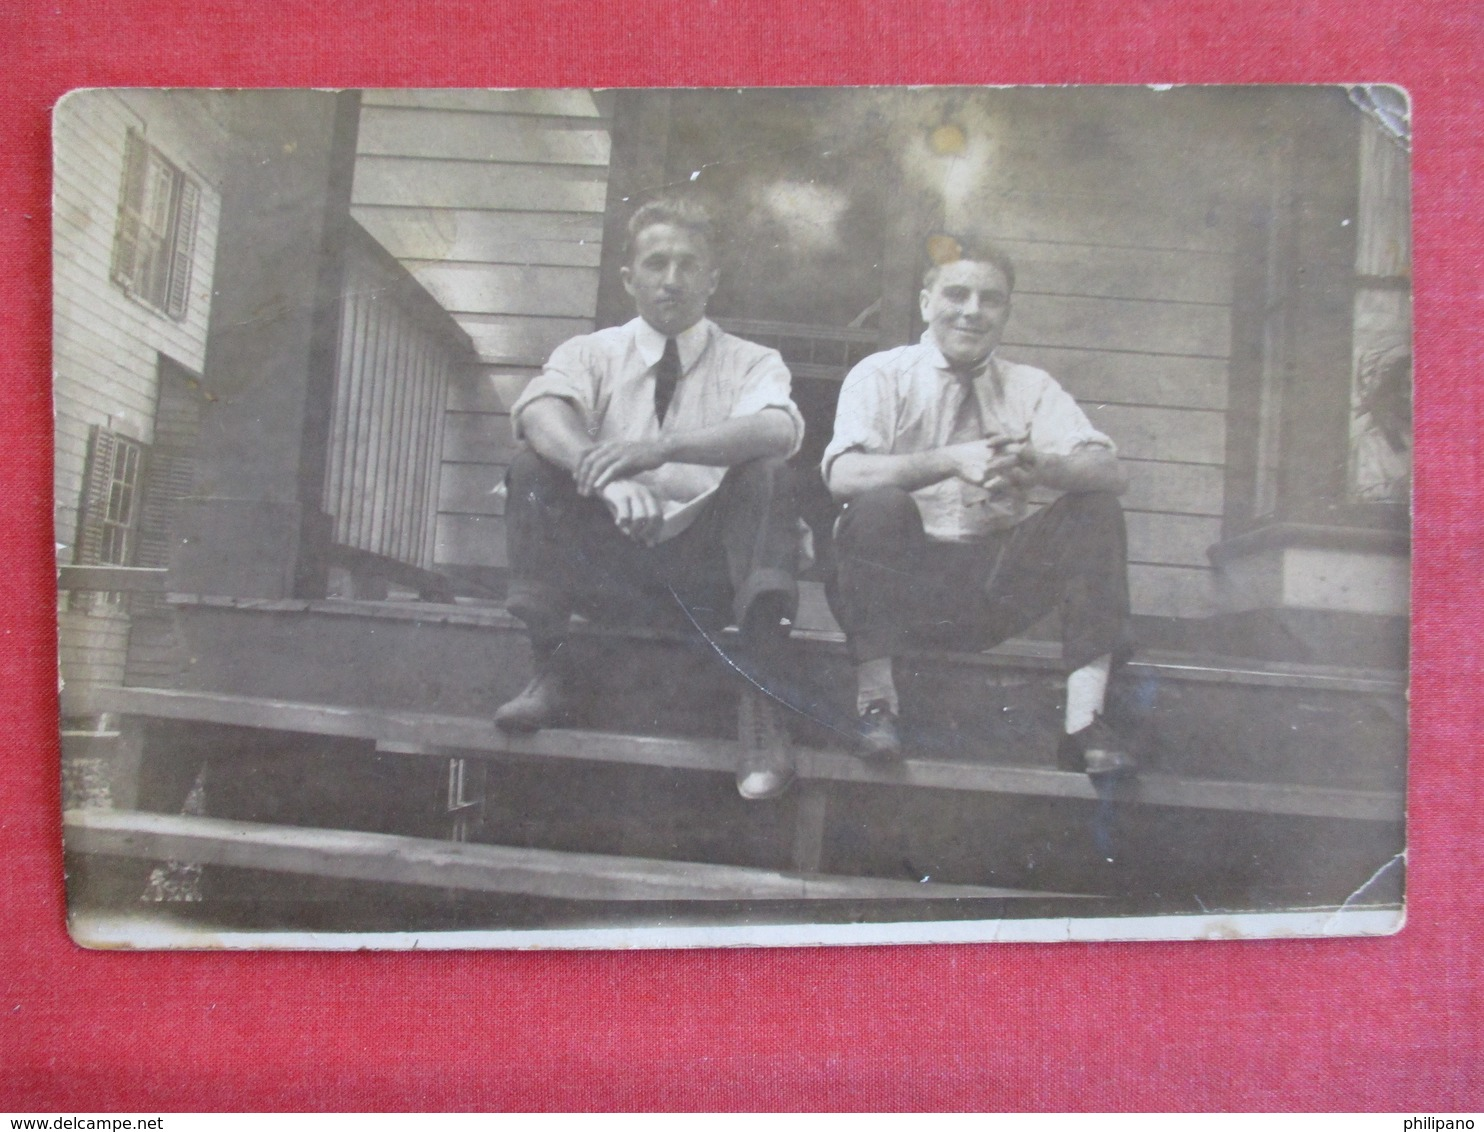 RPPC 2 Men Dressed With Ties On Porch - Ref 2911 - Fashion